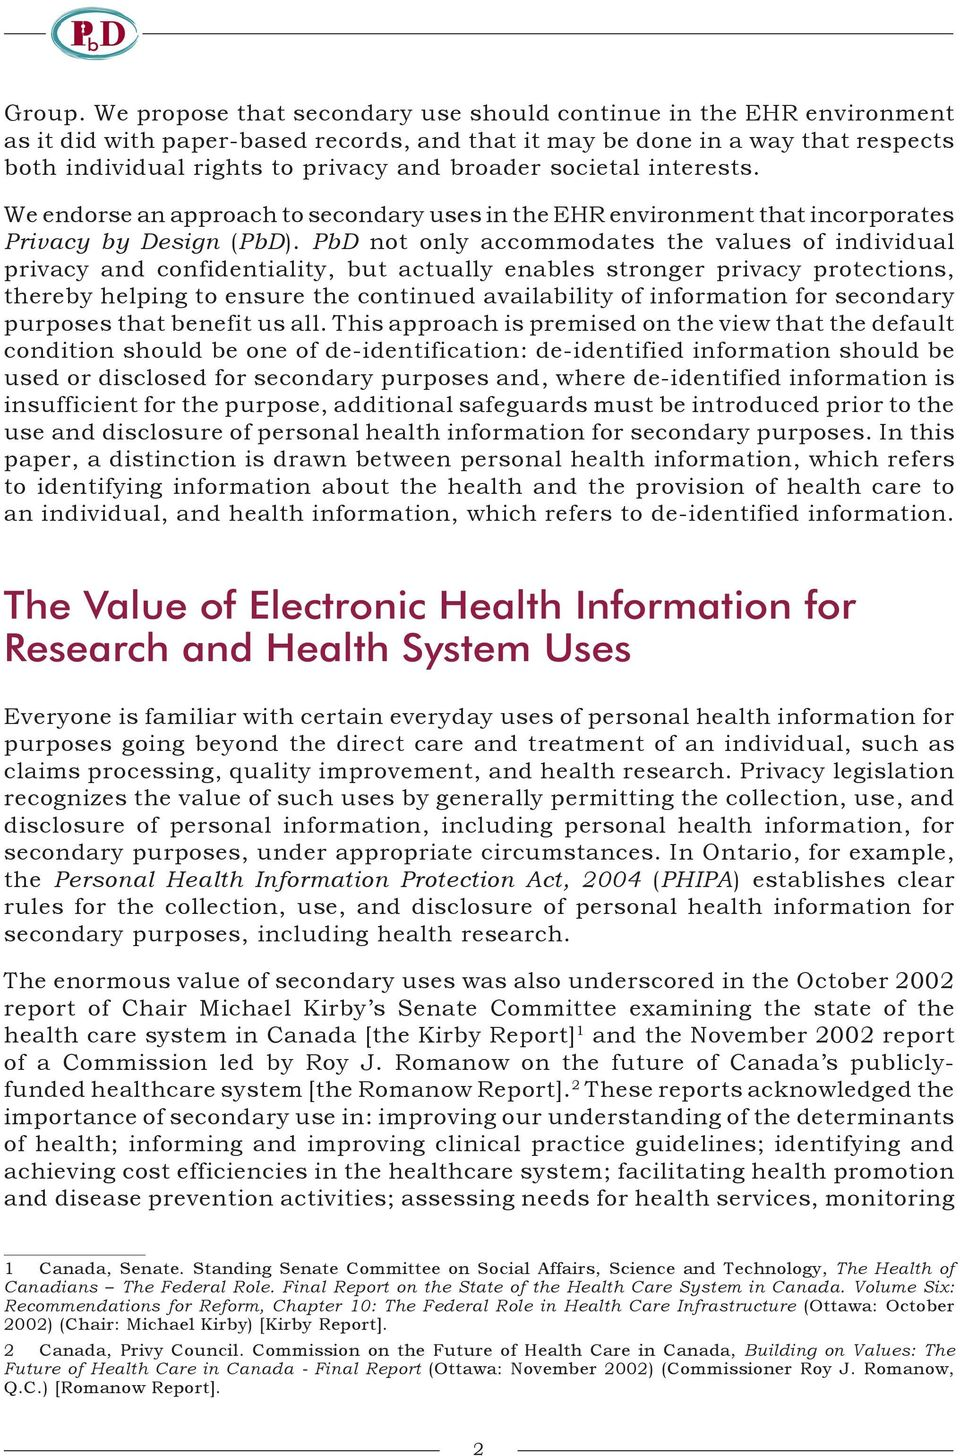 societal interests. We endorse an approach to secondary uses in the EHR environment that incorporates Privacy by Design (PbD).